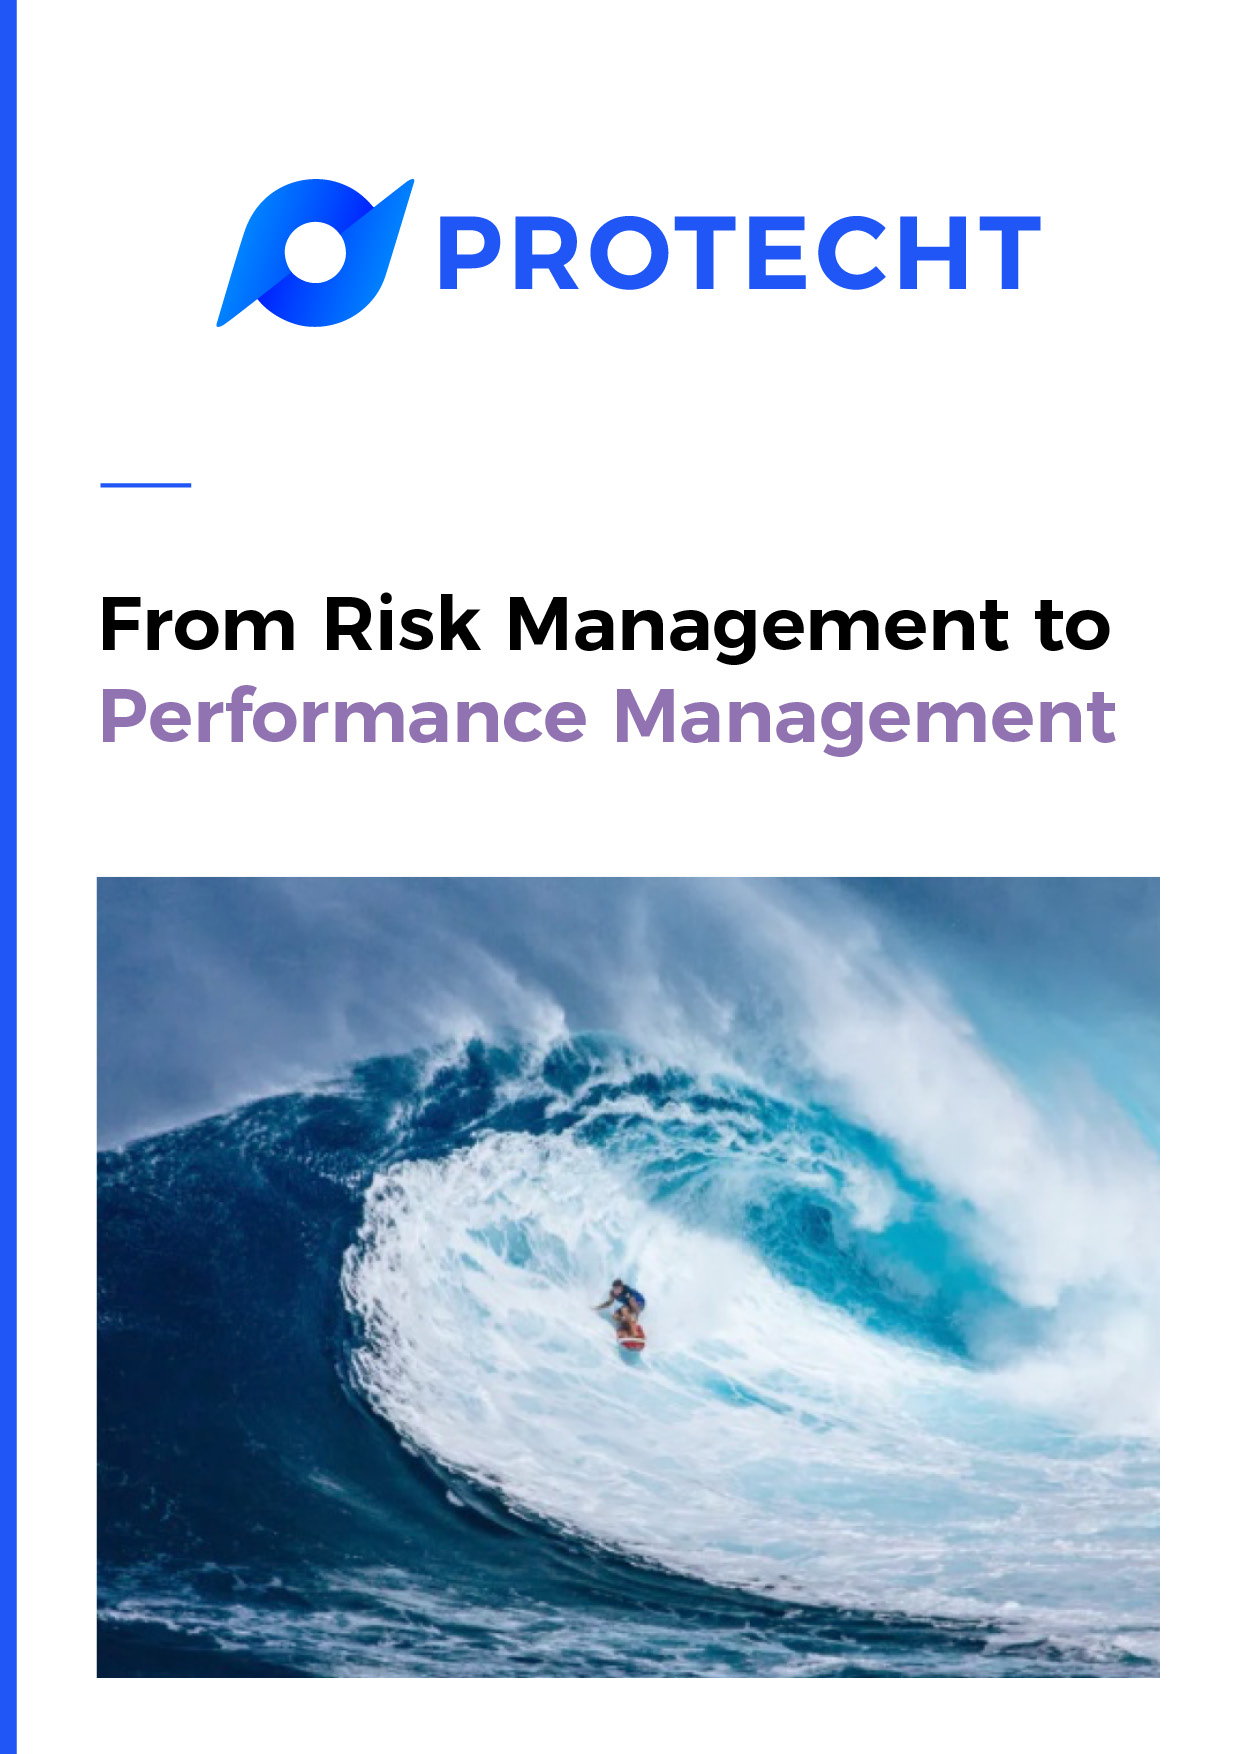 08_eBook_From_Risk_Management_to_Performance_Management-ebook-cover